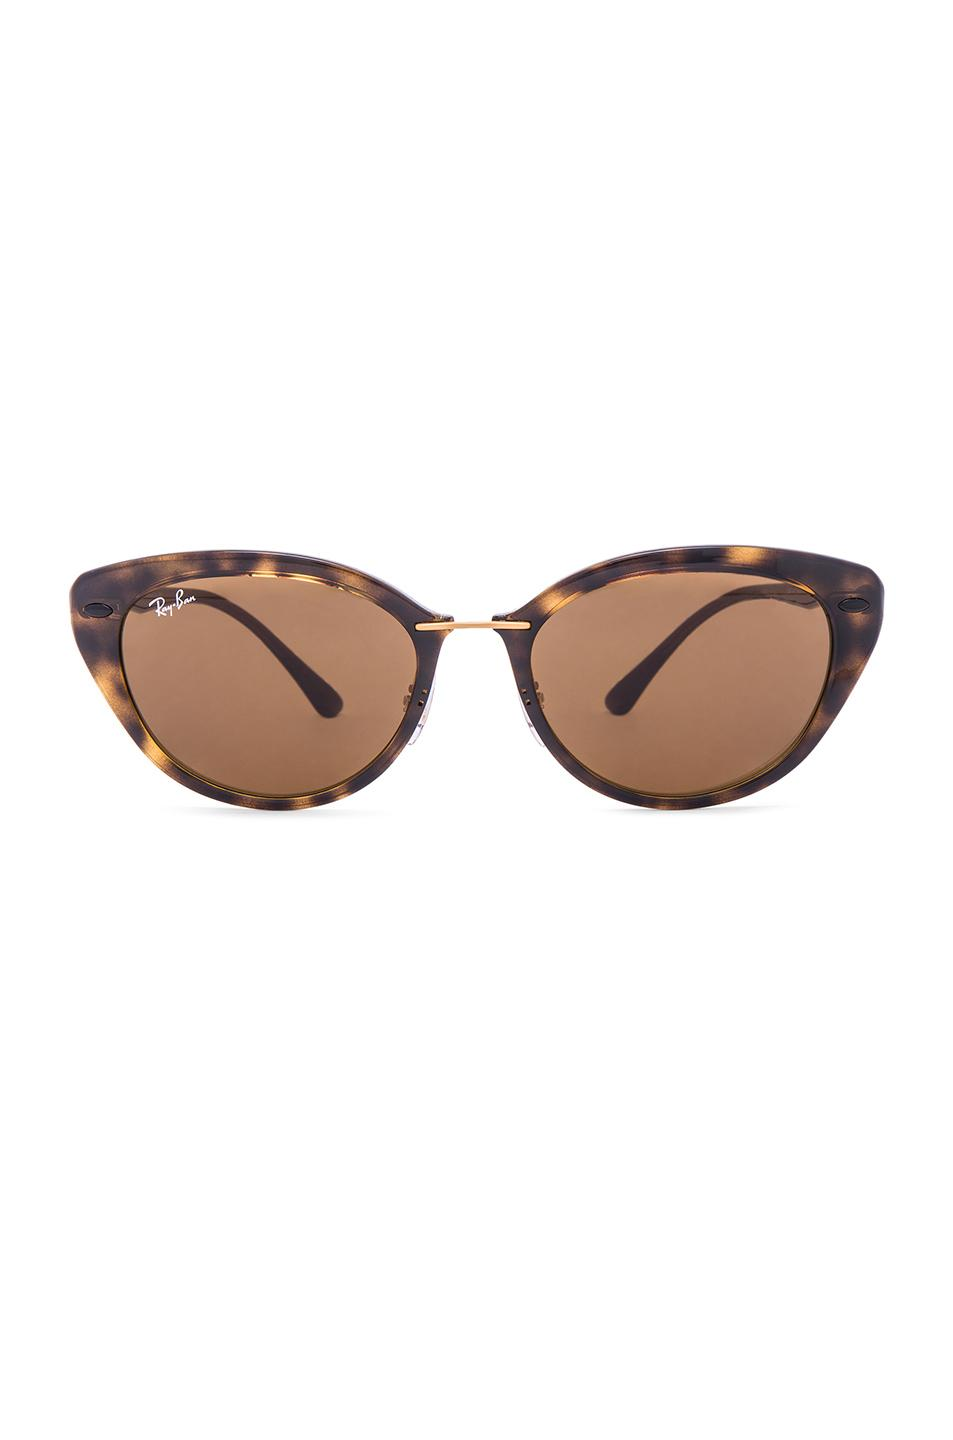 lyst ray ban cat eye sunglasses in brown. Black Bedroom Furniture Sets. Home Design Ideas